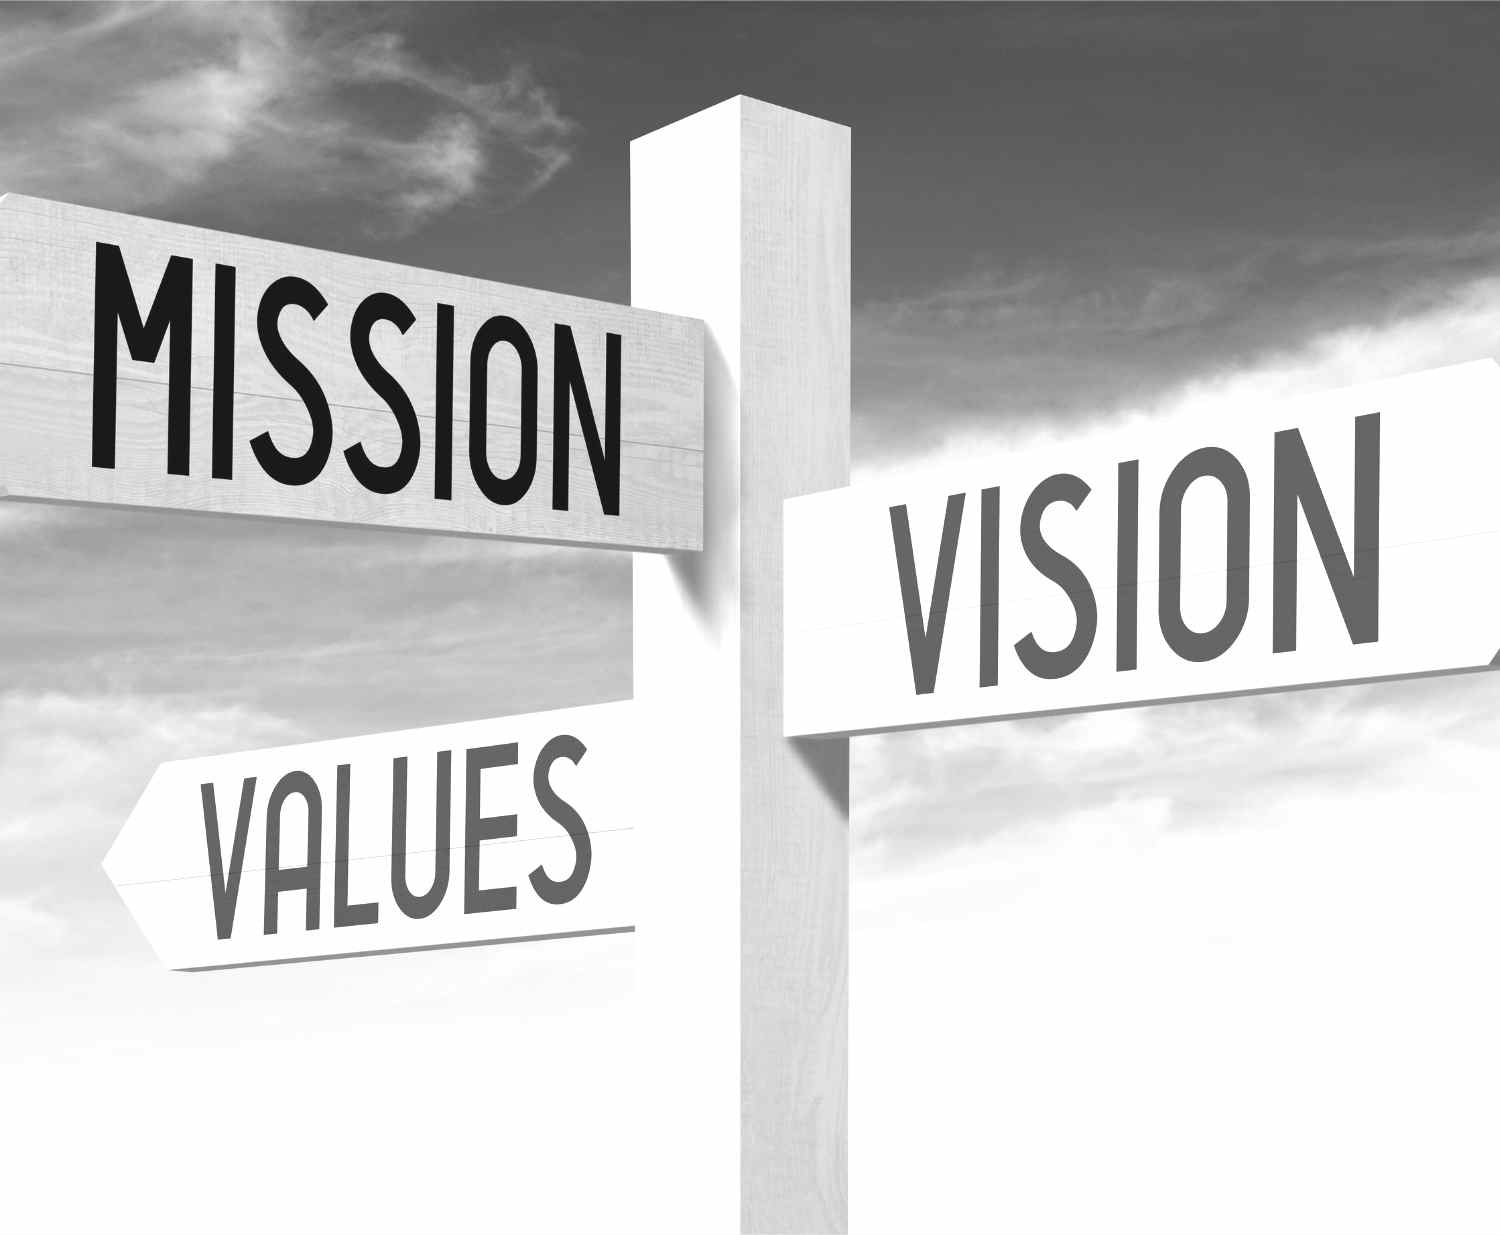 Signpost showing vision, mission, and values